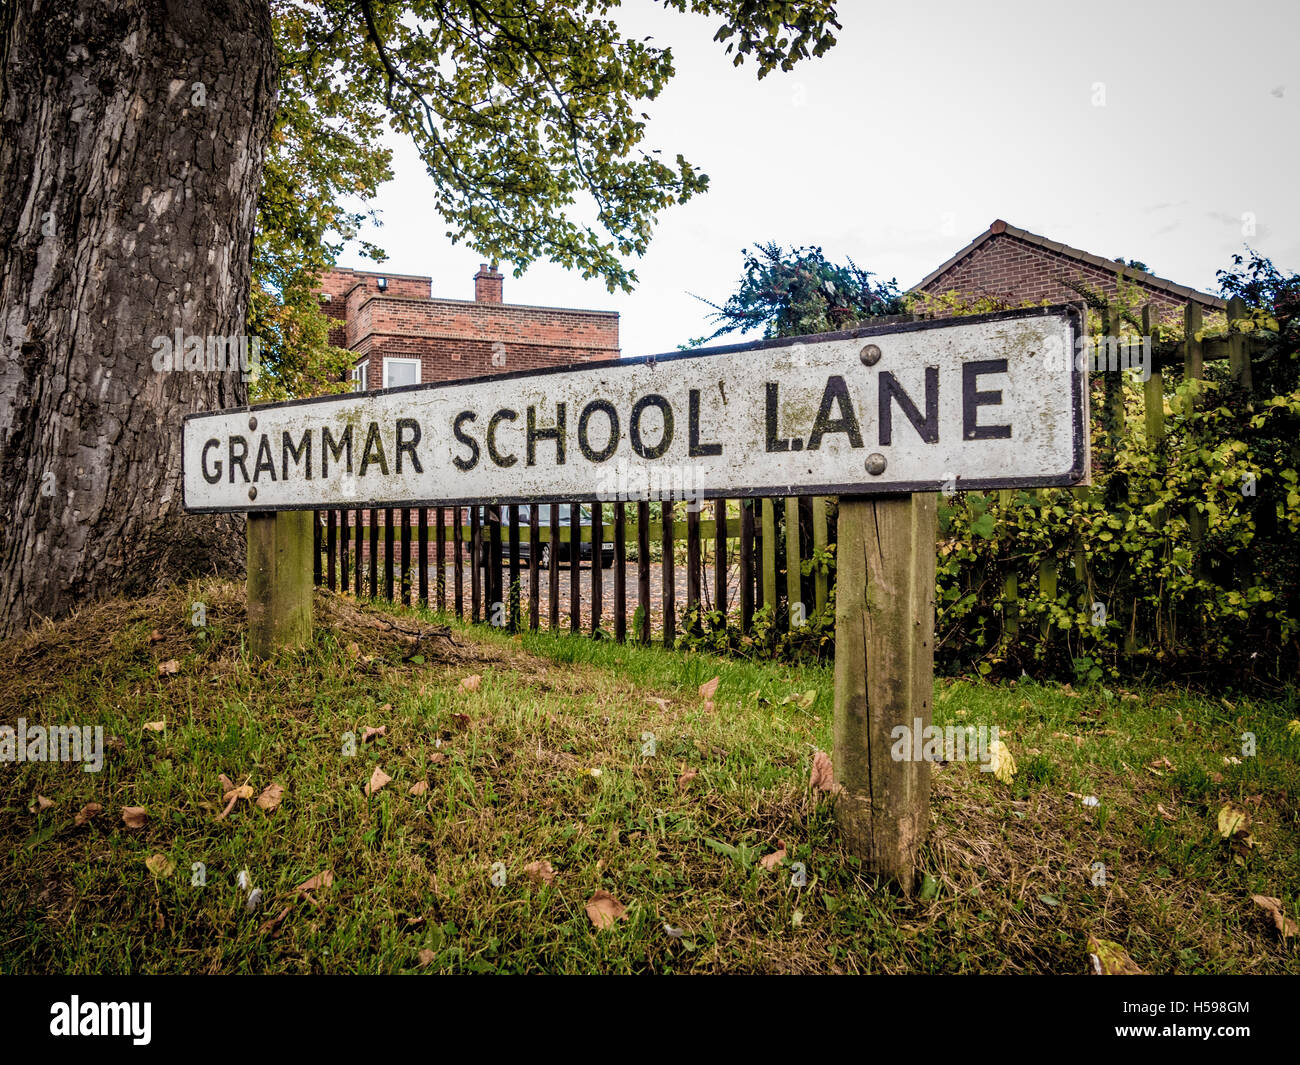 Grammar School Lane sign - Stock Image